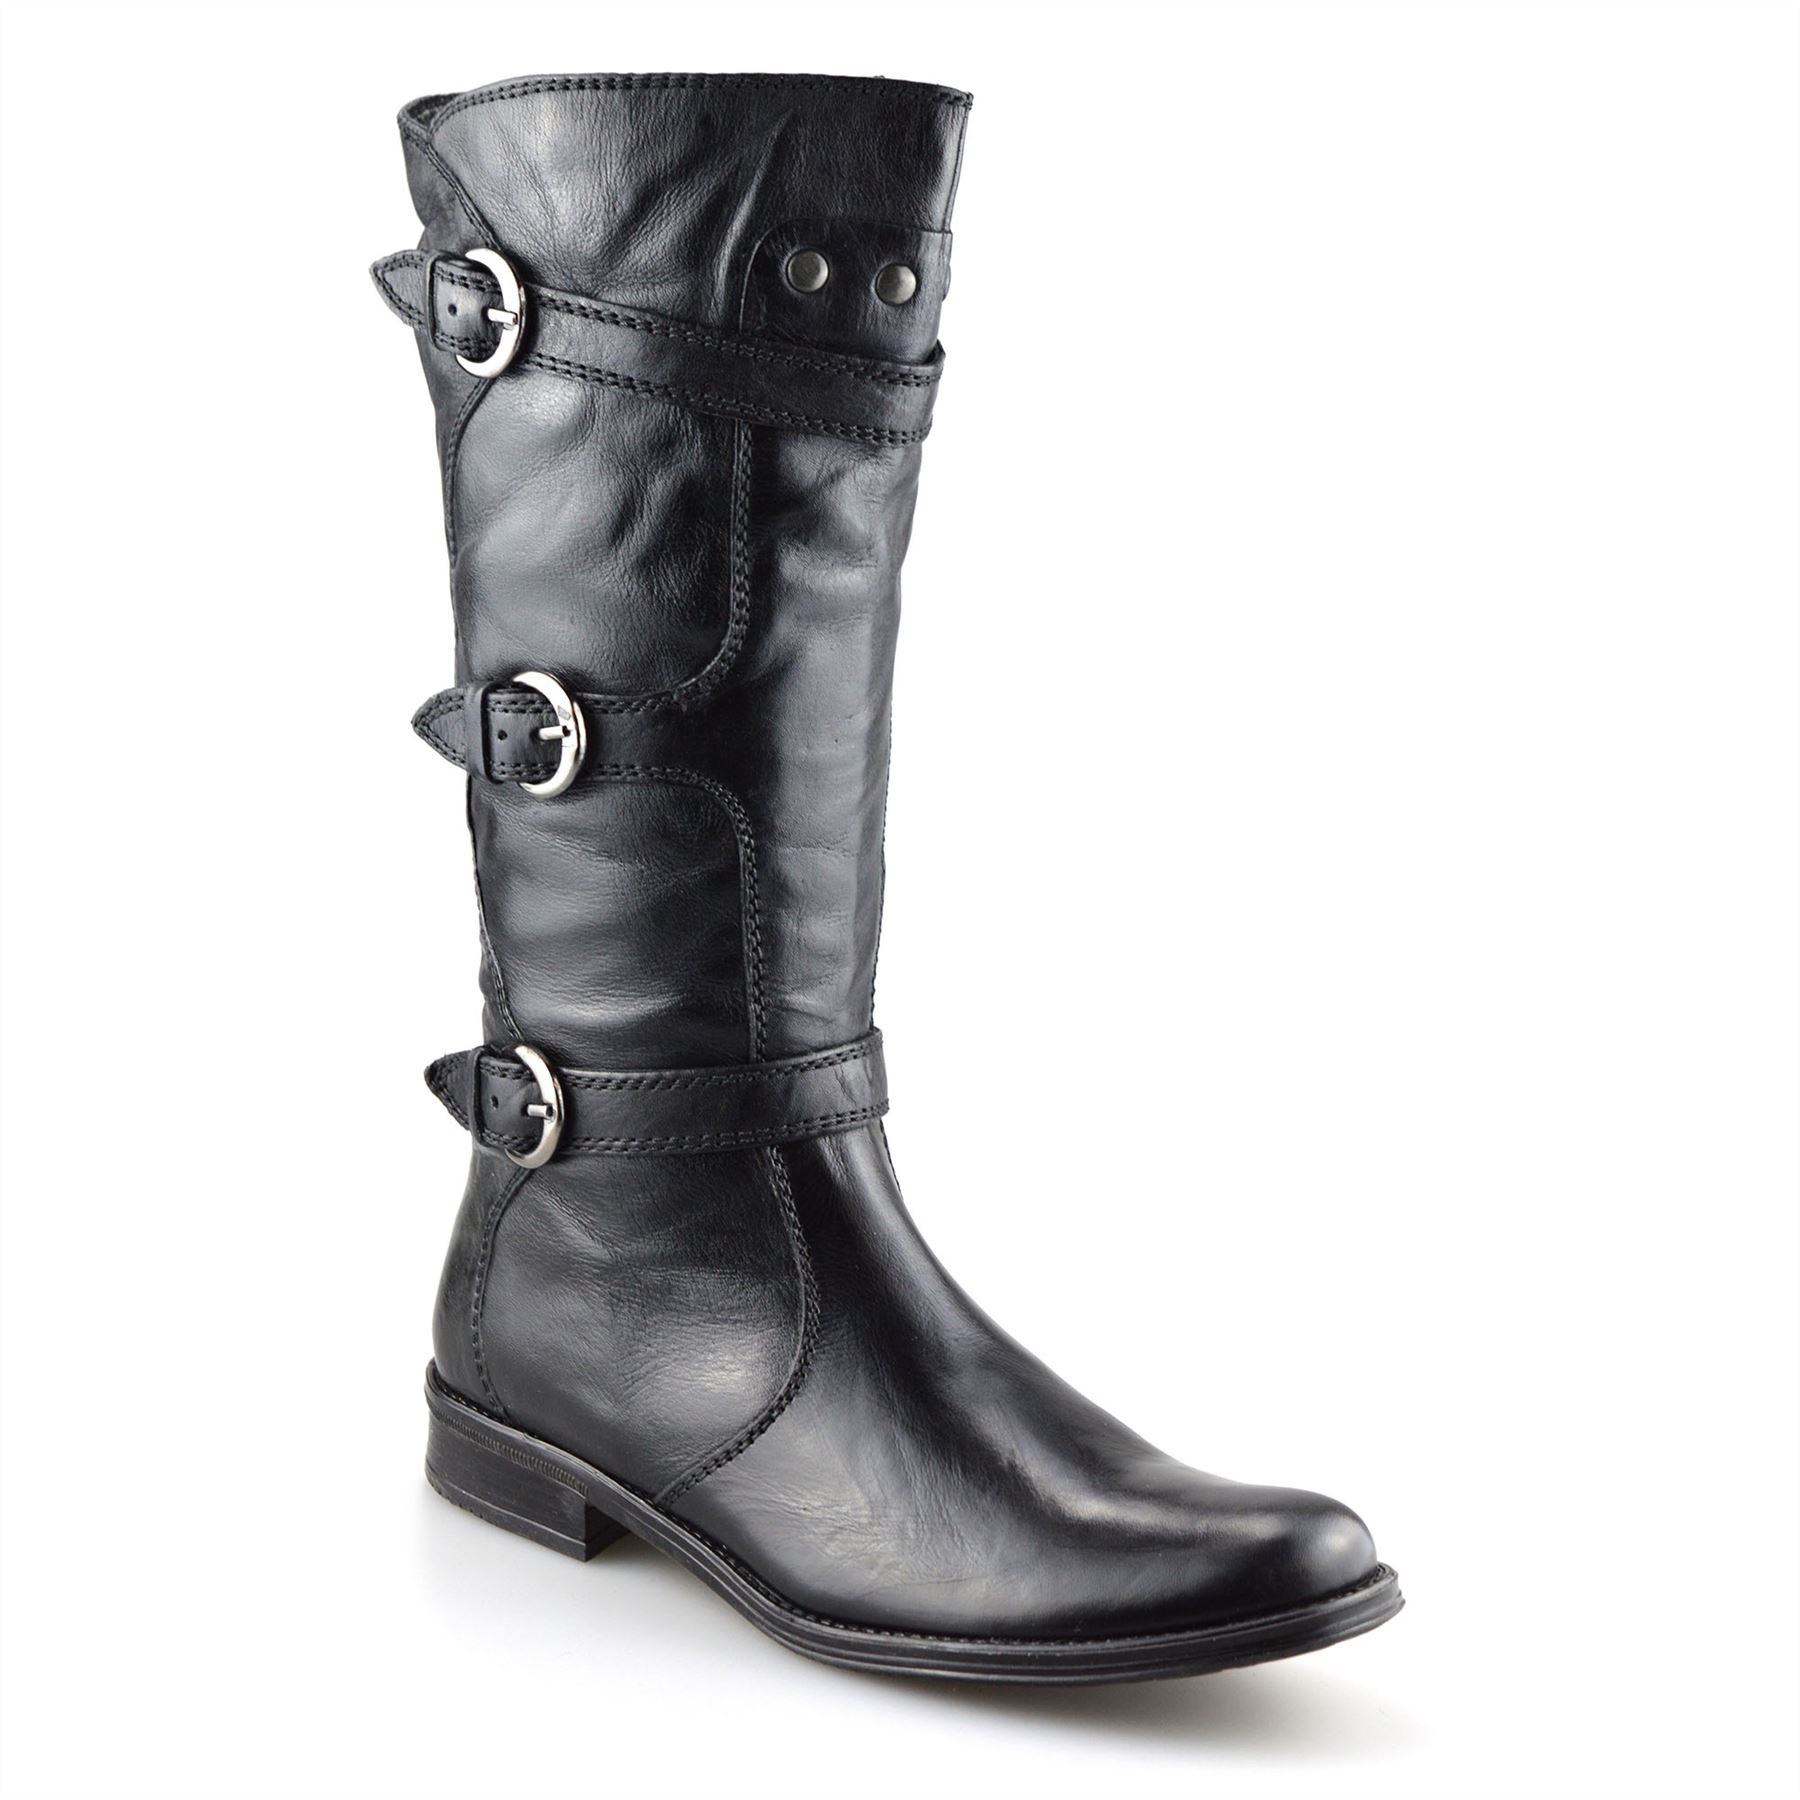 408e2abb460 Details about Ladies Womens Leather Mid Calf Low Flat Heel Zip Up Biker  Riding Boots Shoe Size